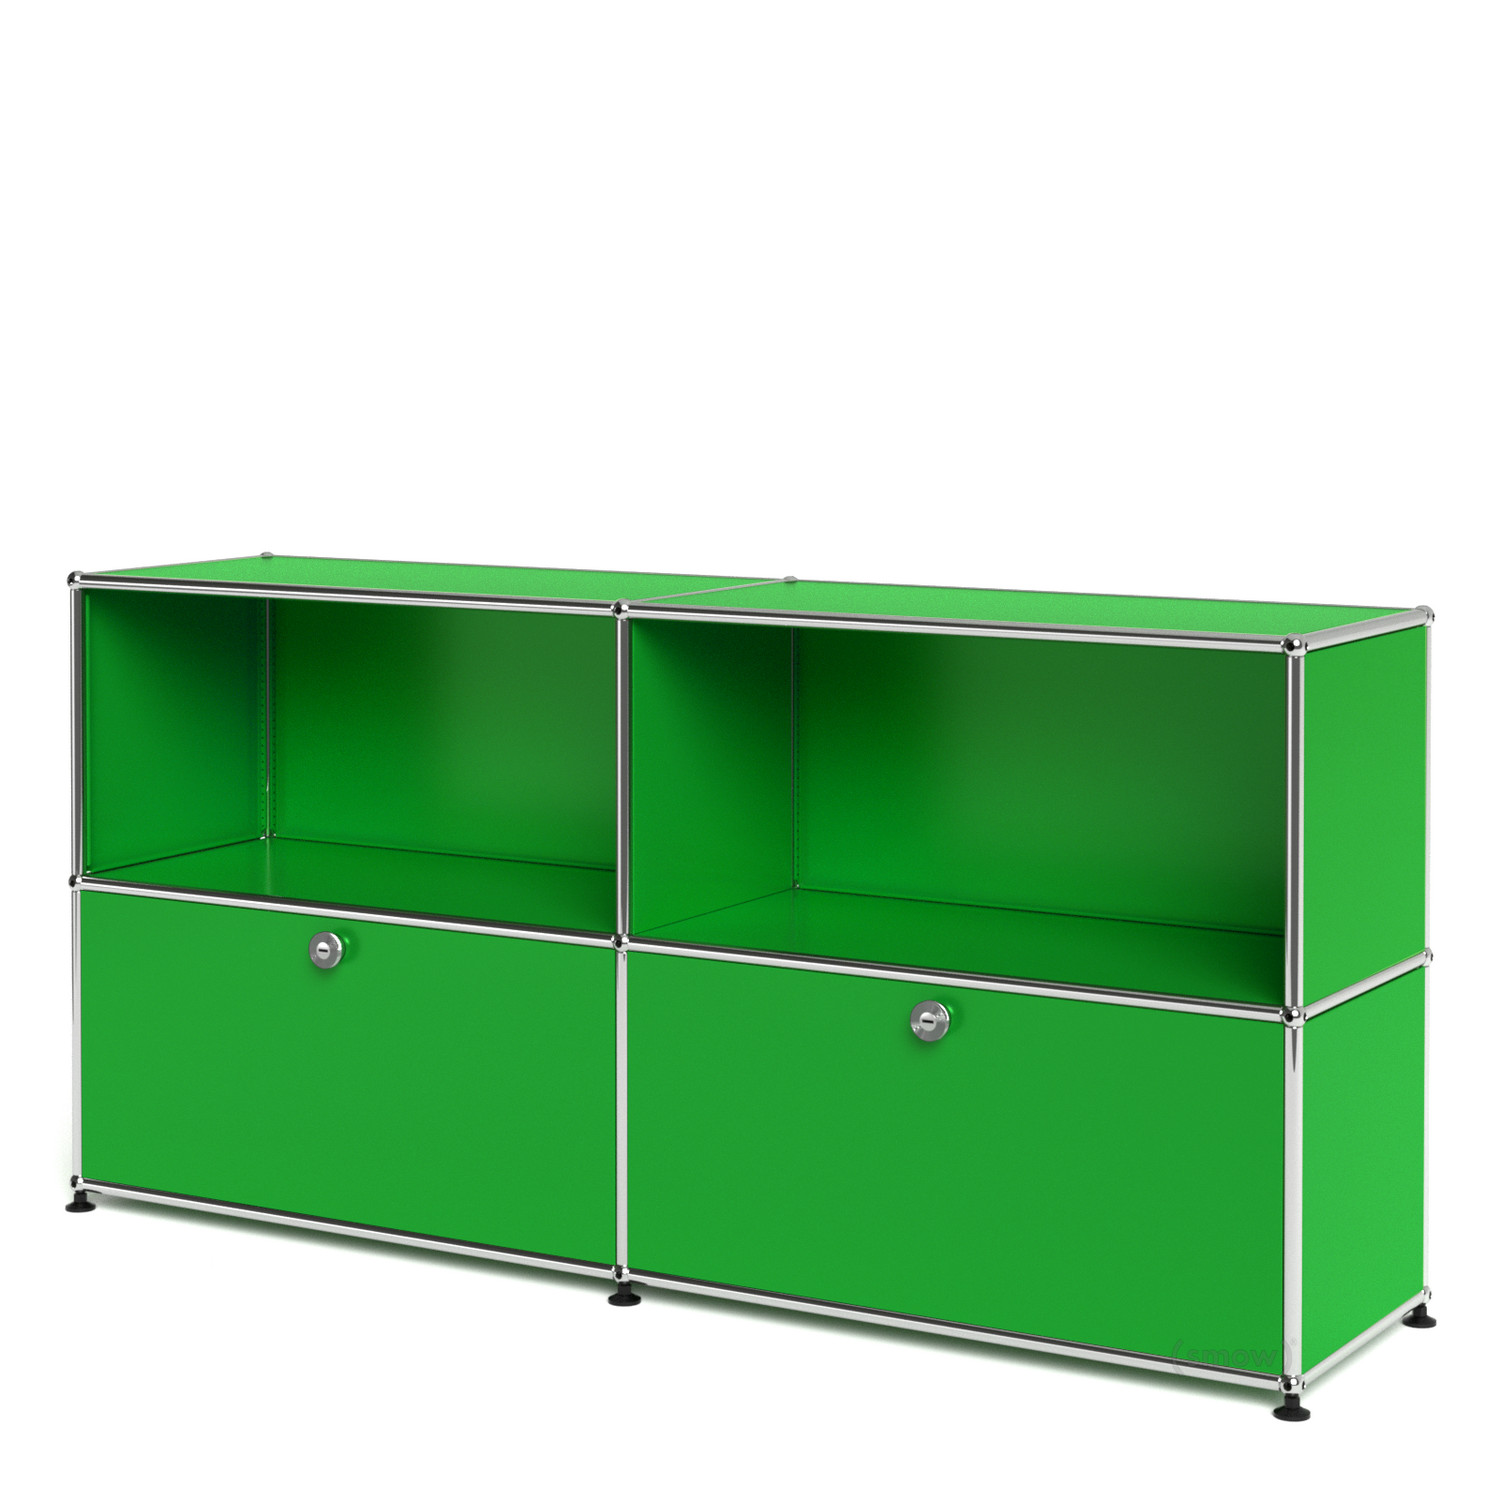 Usm haller sideboard l with 2 drop down doors usm green for Usm haller sideboard weiay